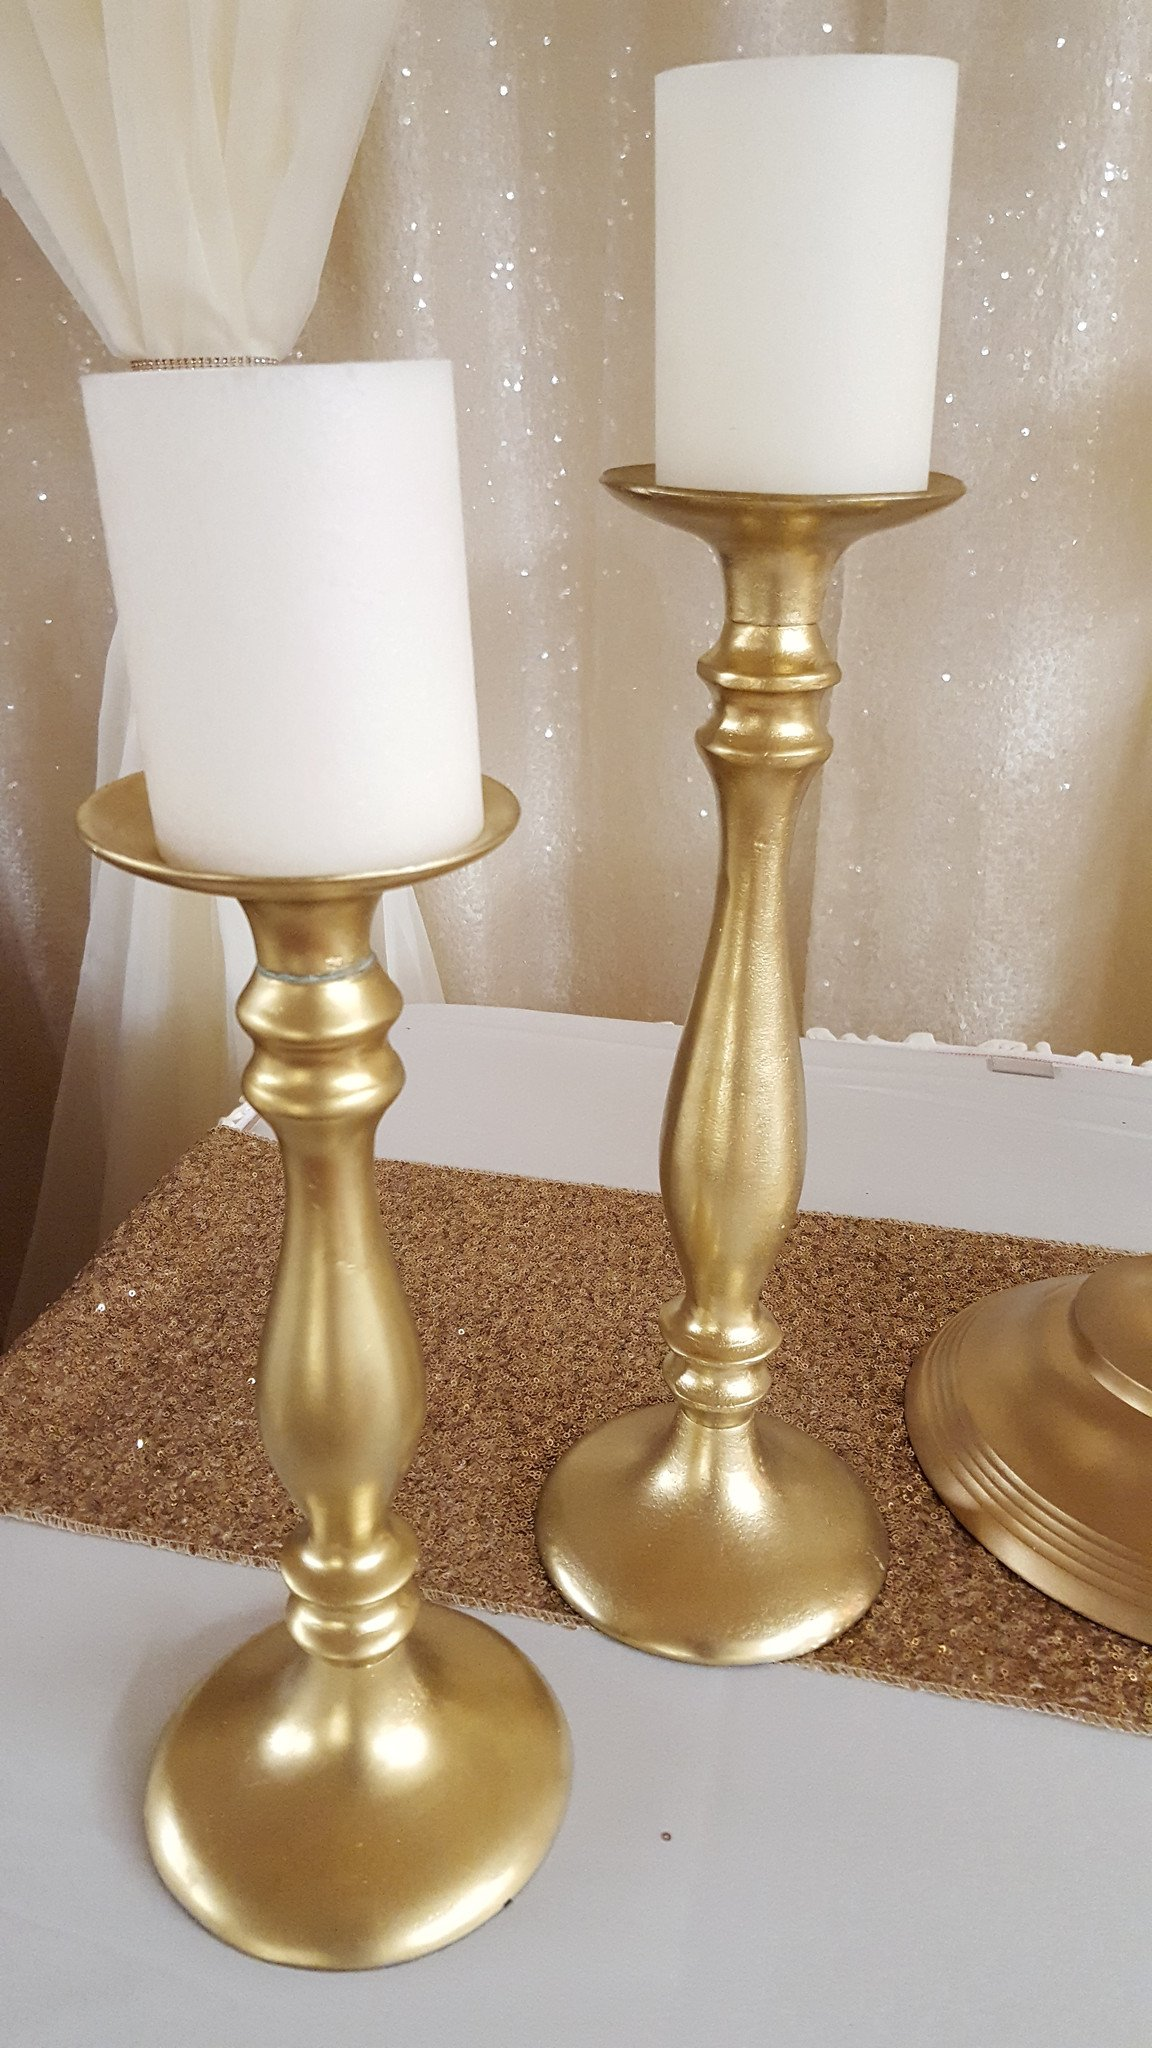 Gold Candlesticks Image